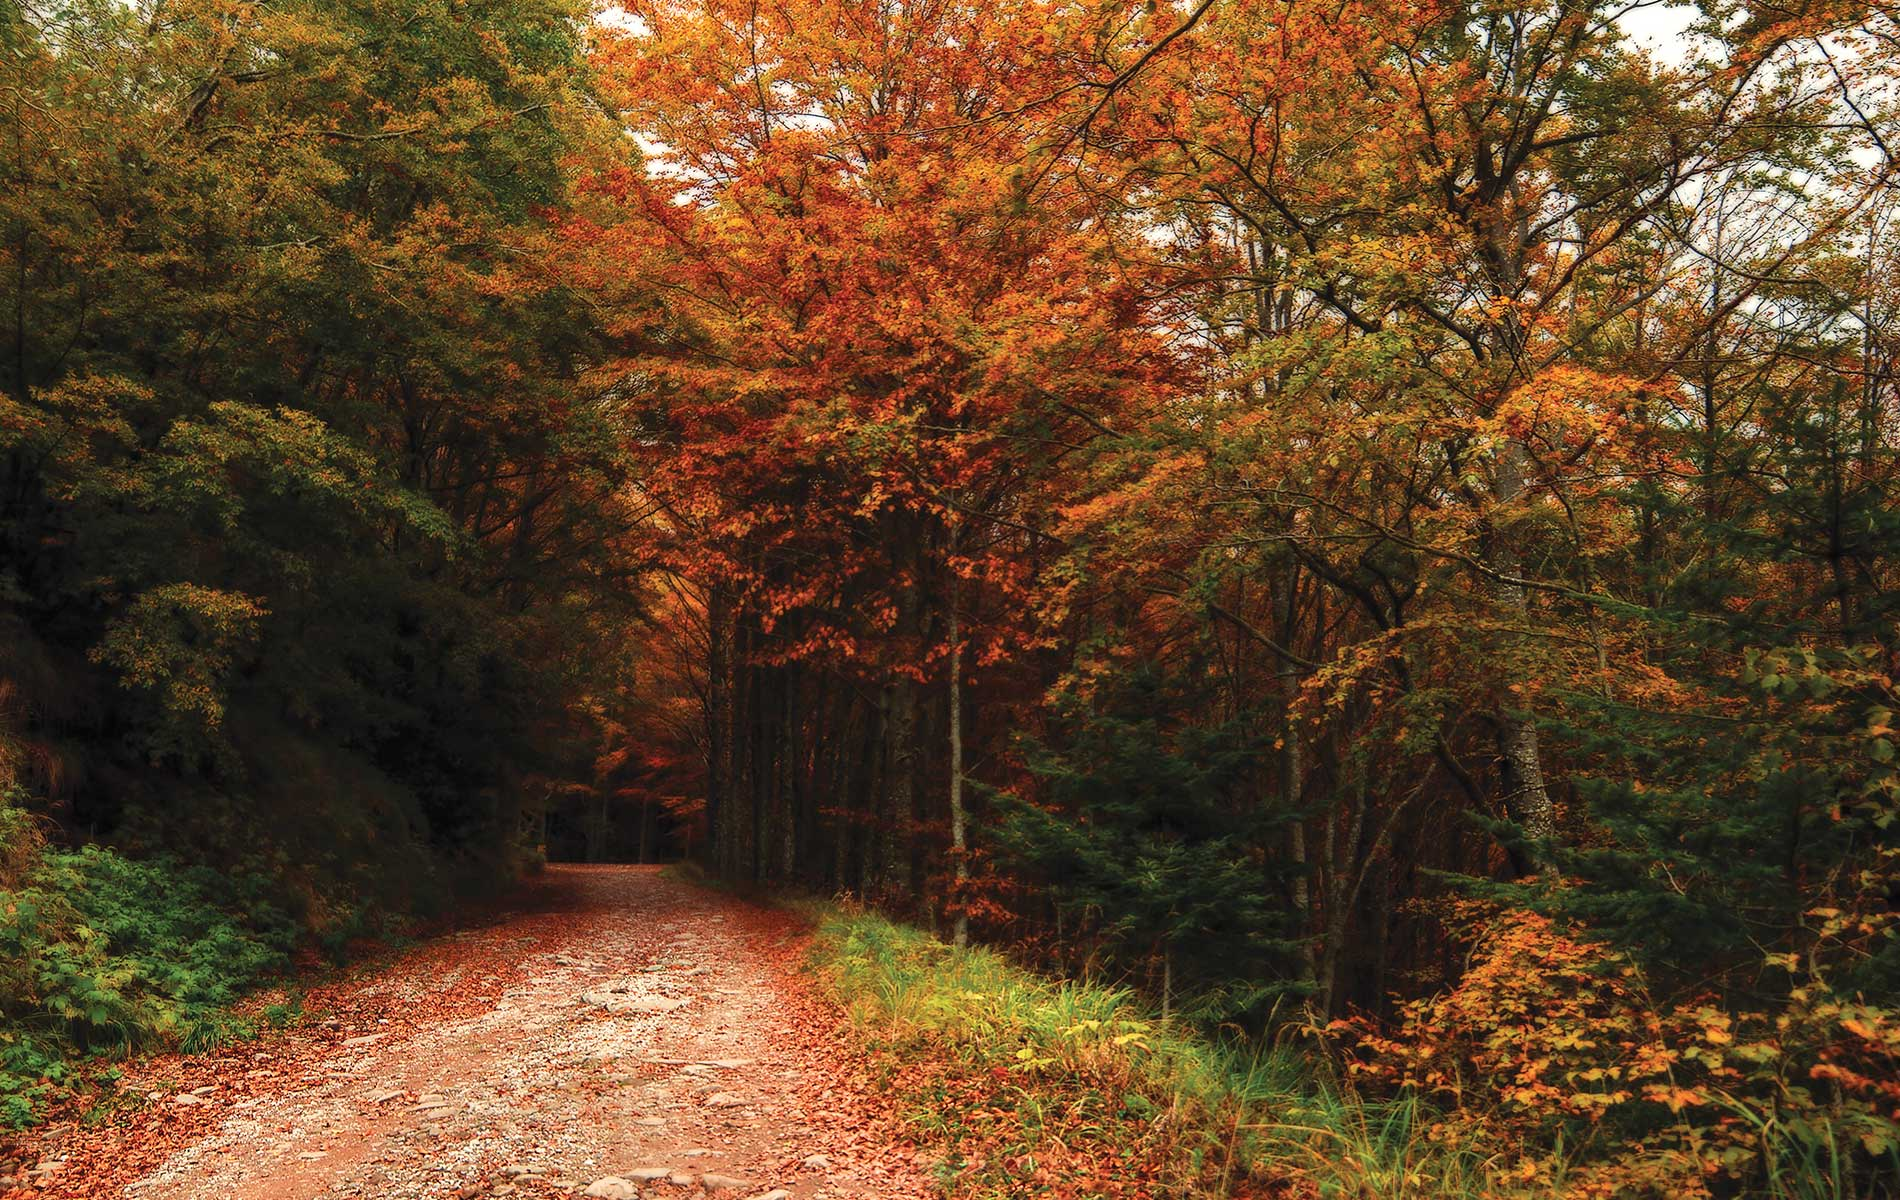 A autumn forest trail near the Marriott Renaissance Tuscany full of green and orange leafed trees